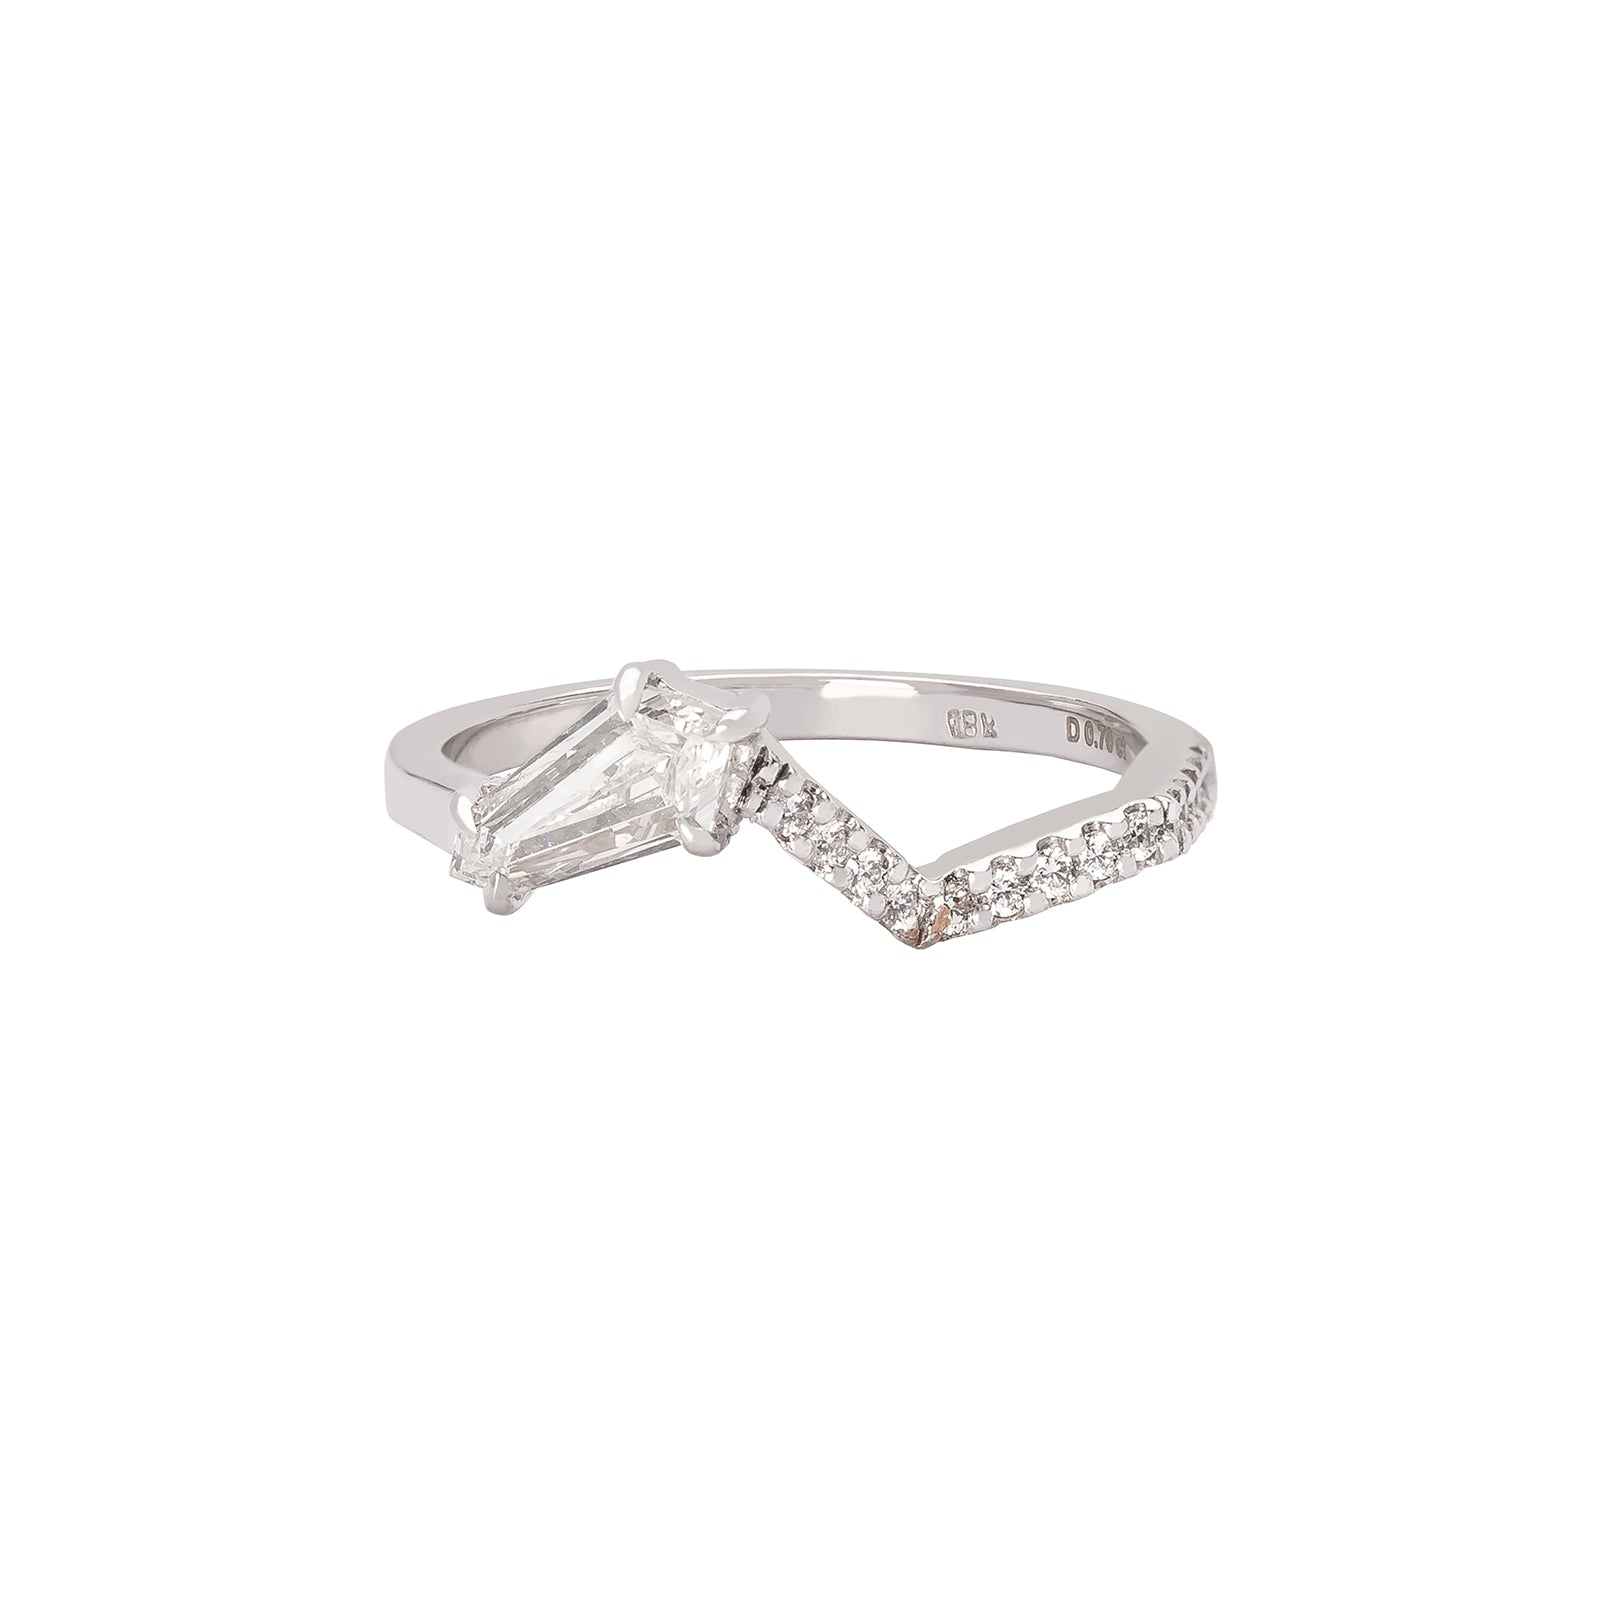 Kavant & Sharart Origami Ziggy Diamond Stack Ring No.3 - Rings - Broken English Jewelry